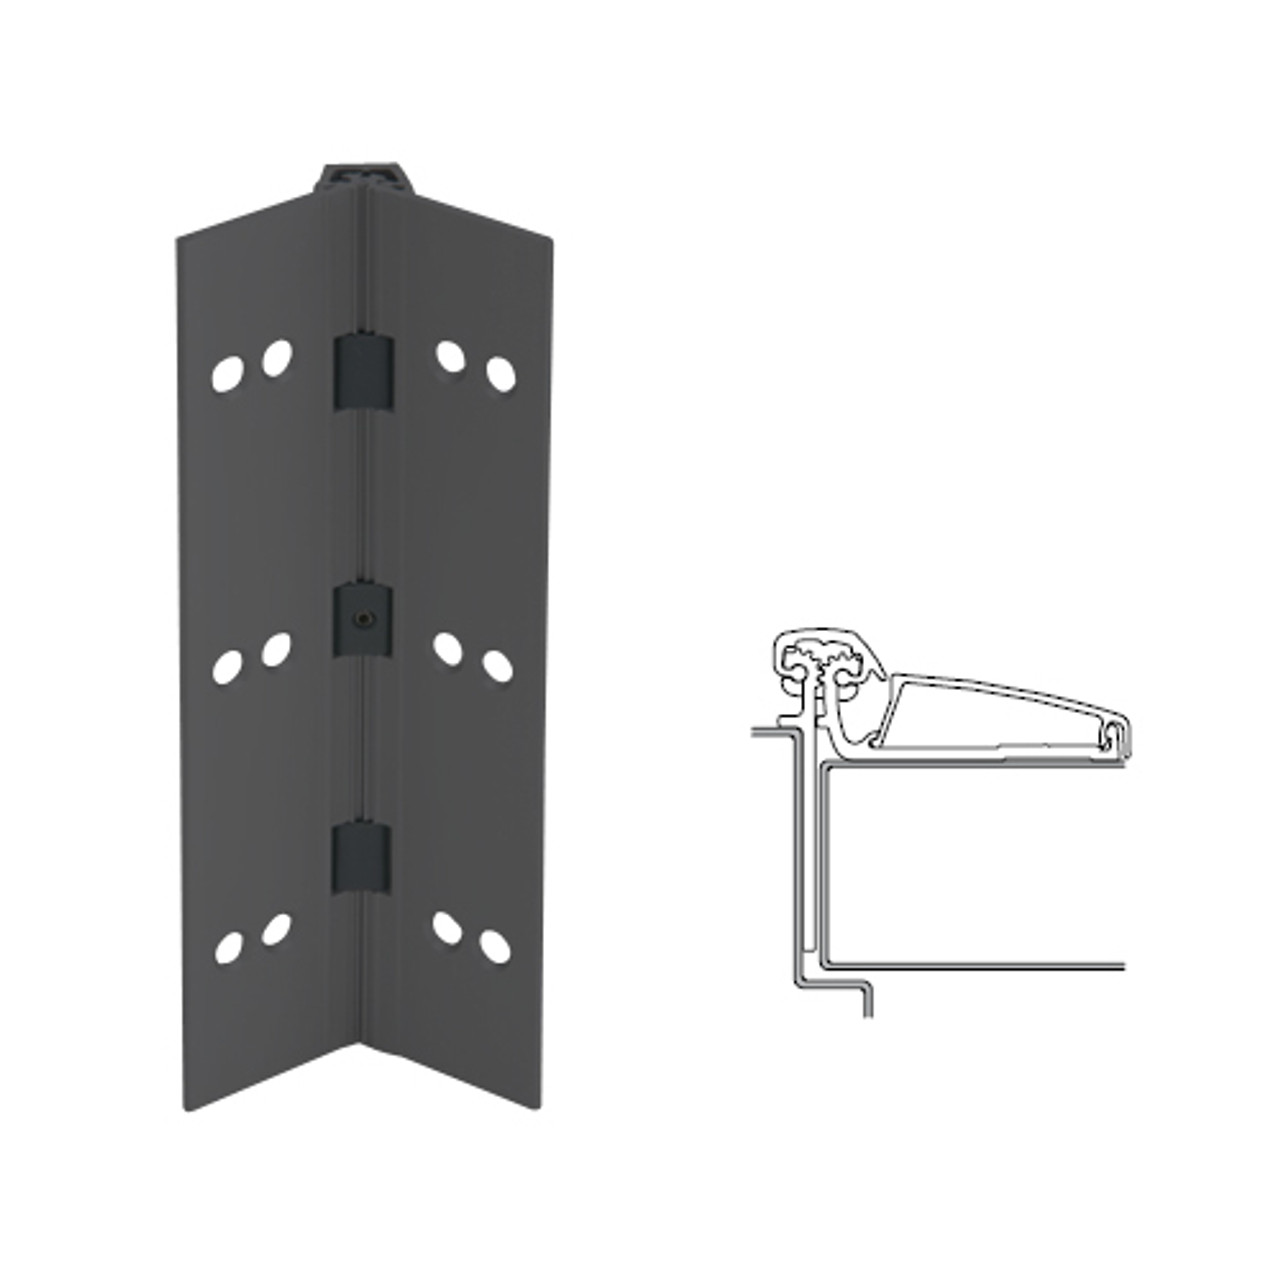 046XY-315AN-85-TEKWD IVES Adjustable Half Surface Continuous Geared Hinges with Wood Screws in Anodized Black